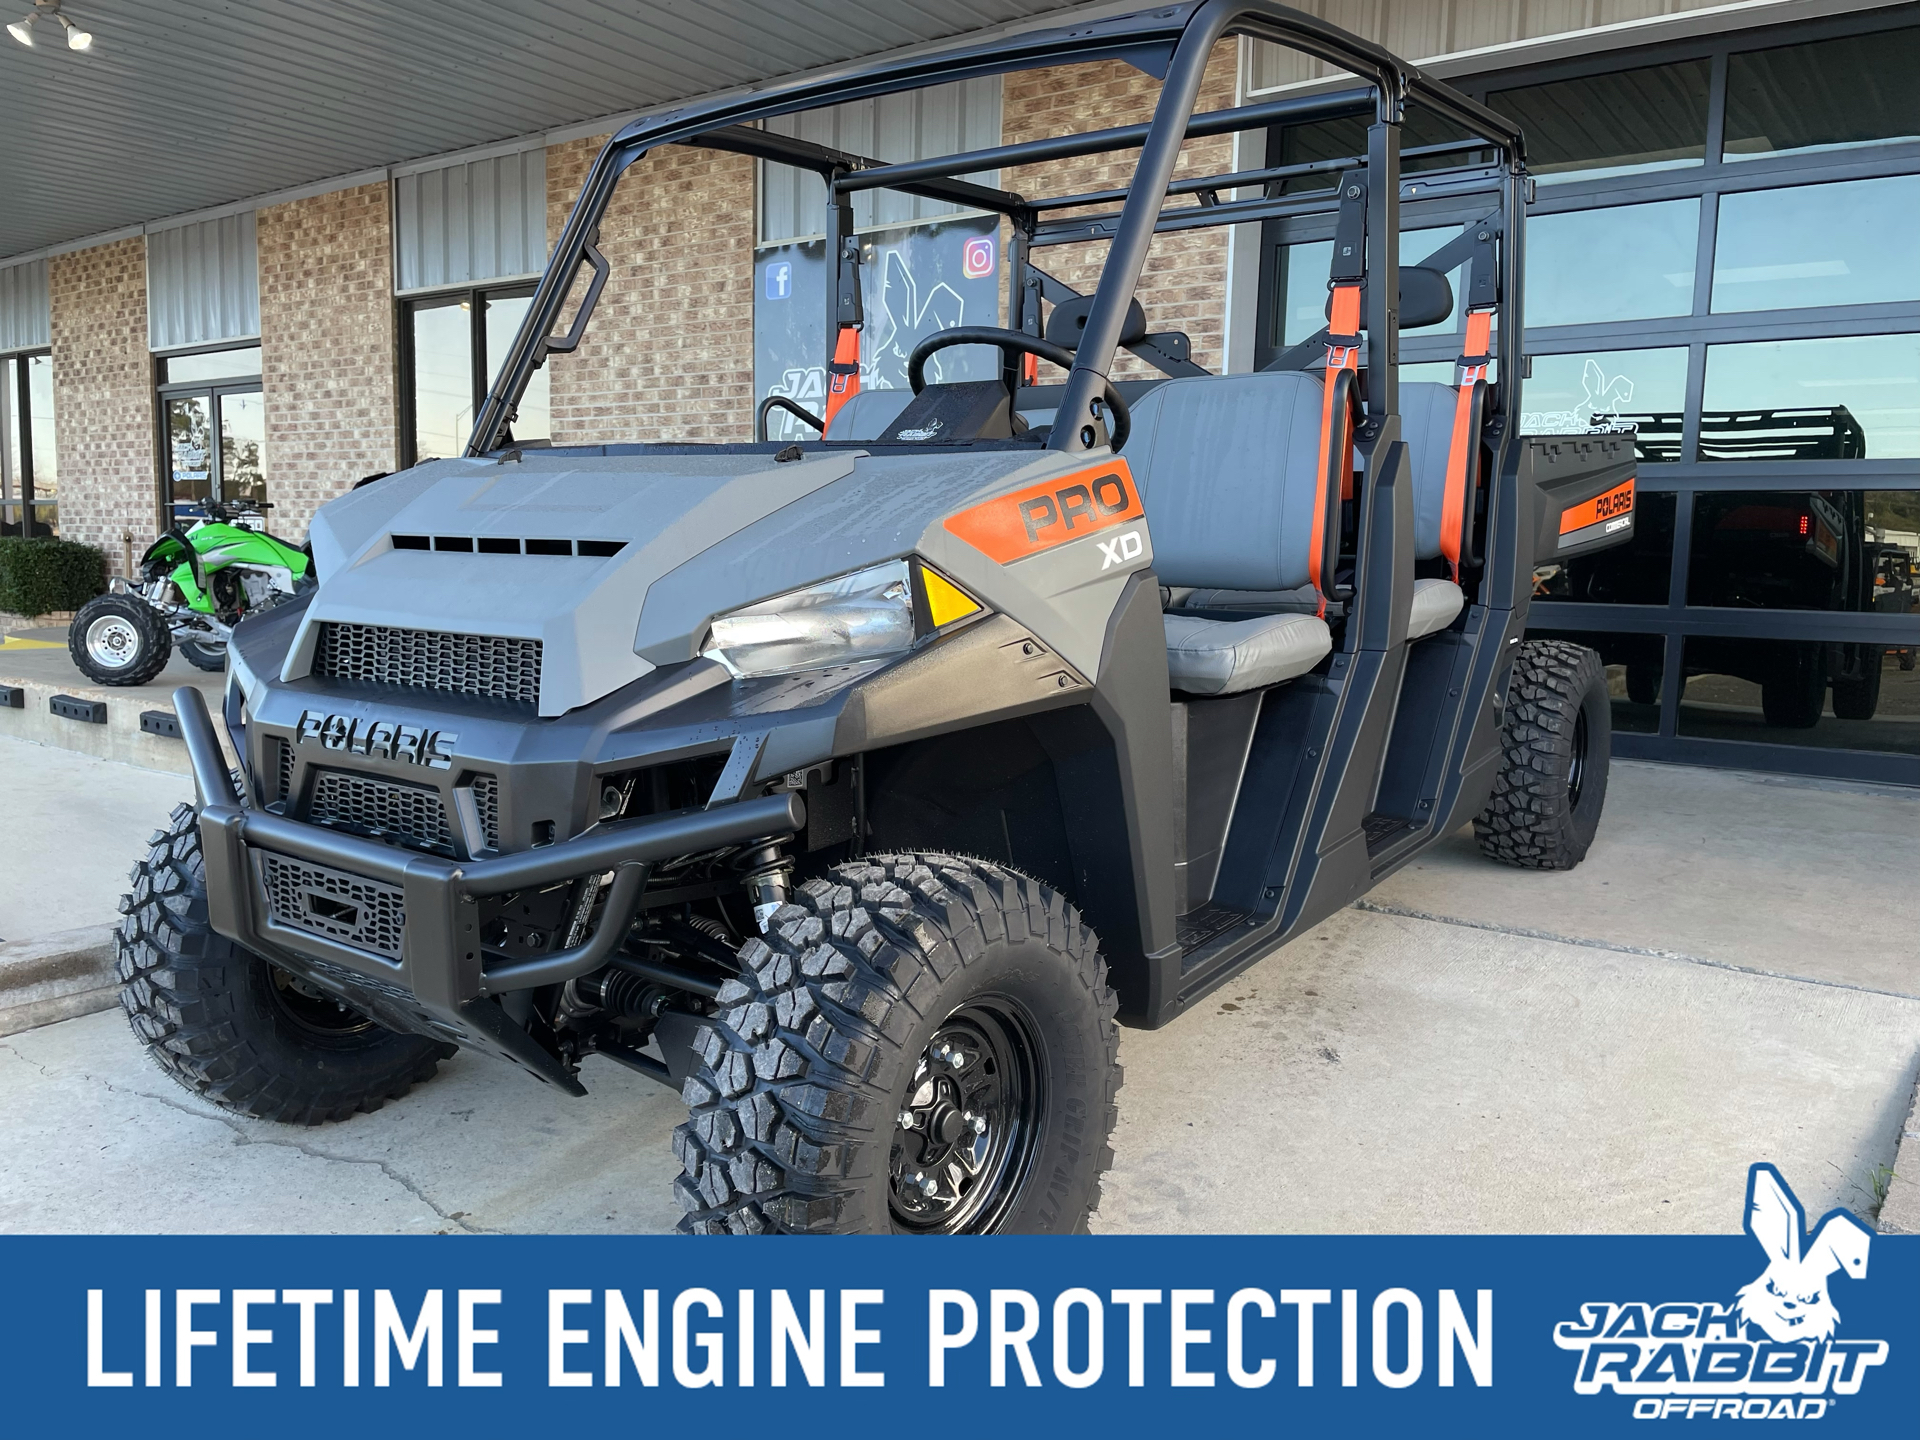 2020 Polaris PRO XD 4000G AWD in Marshall, Texas - Photo 1